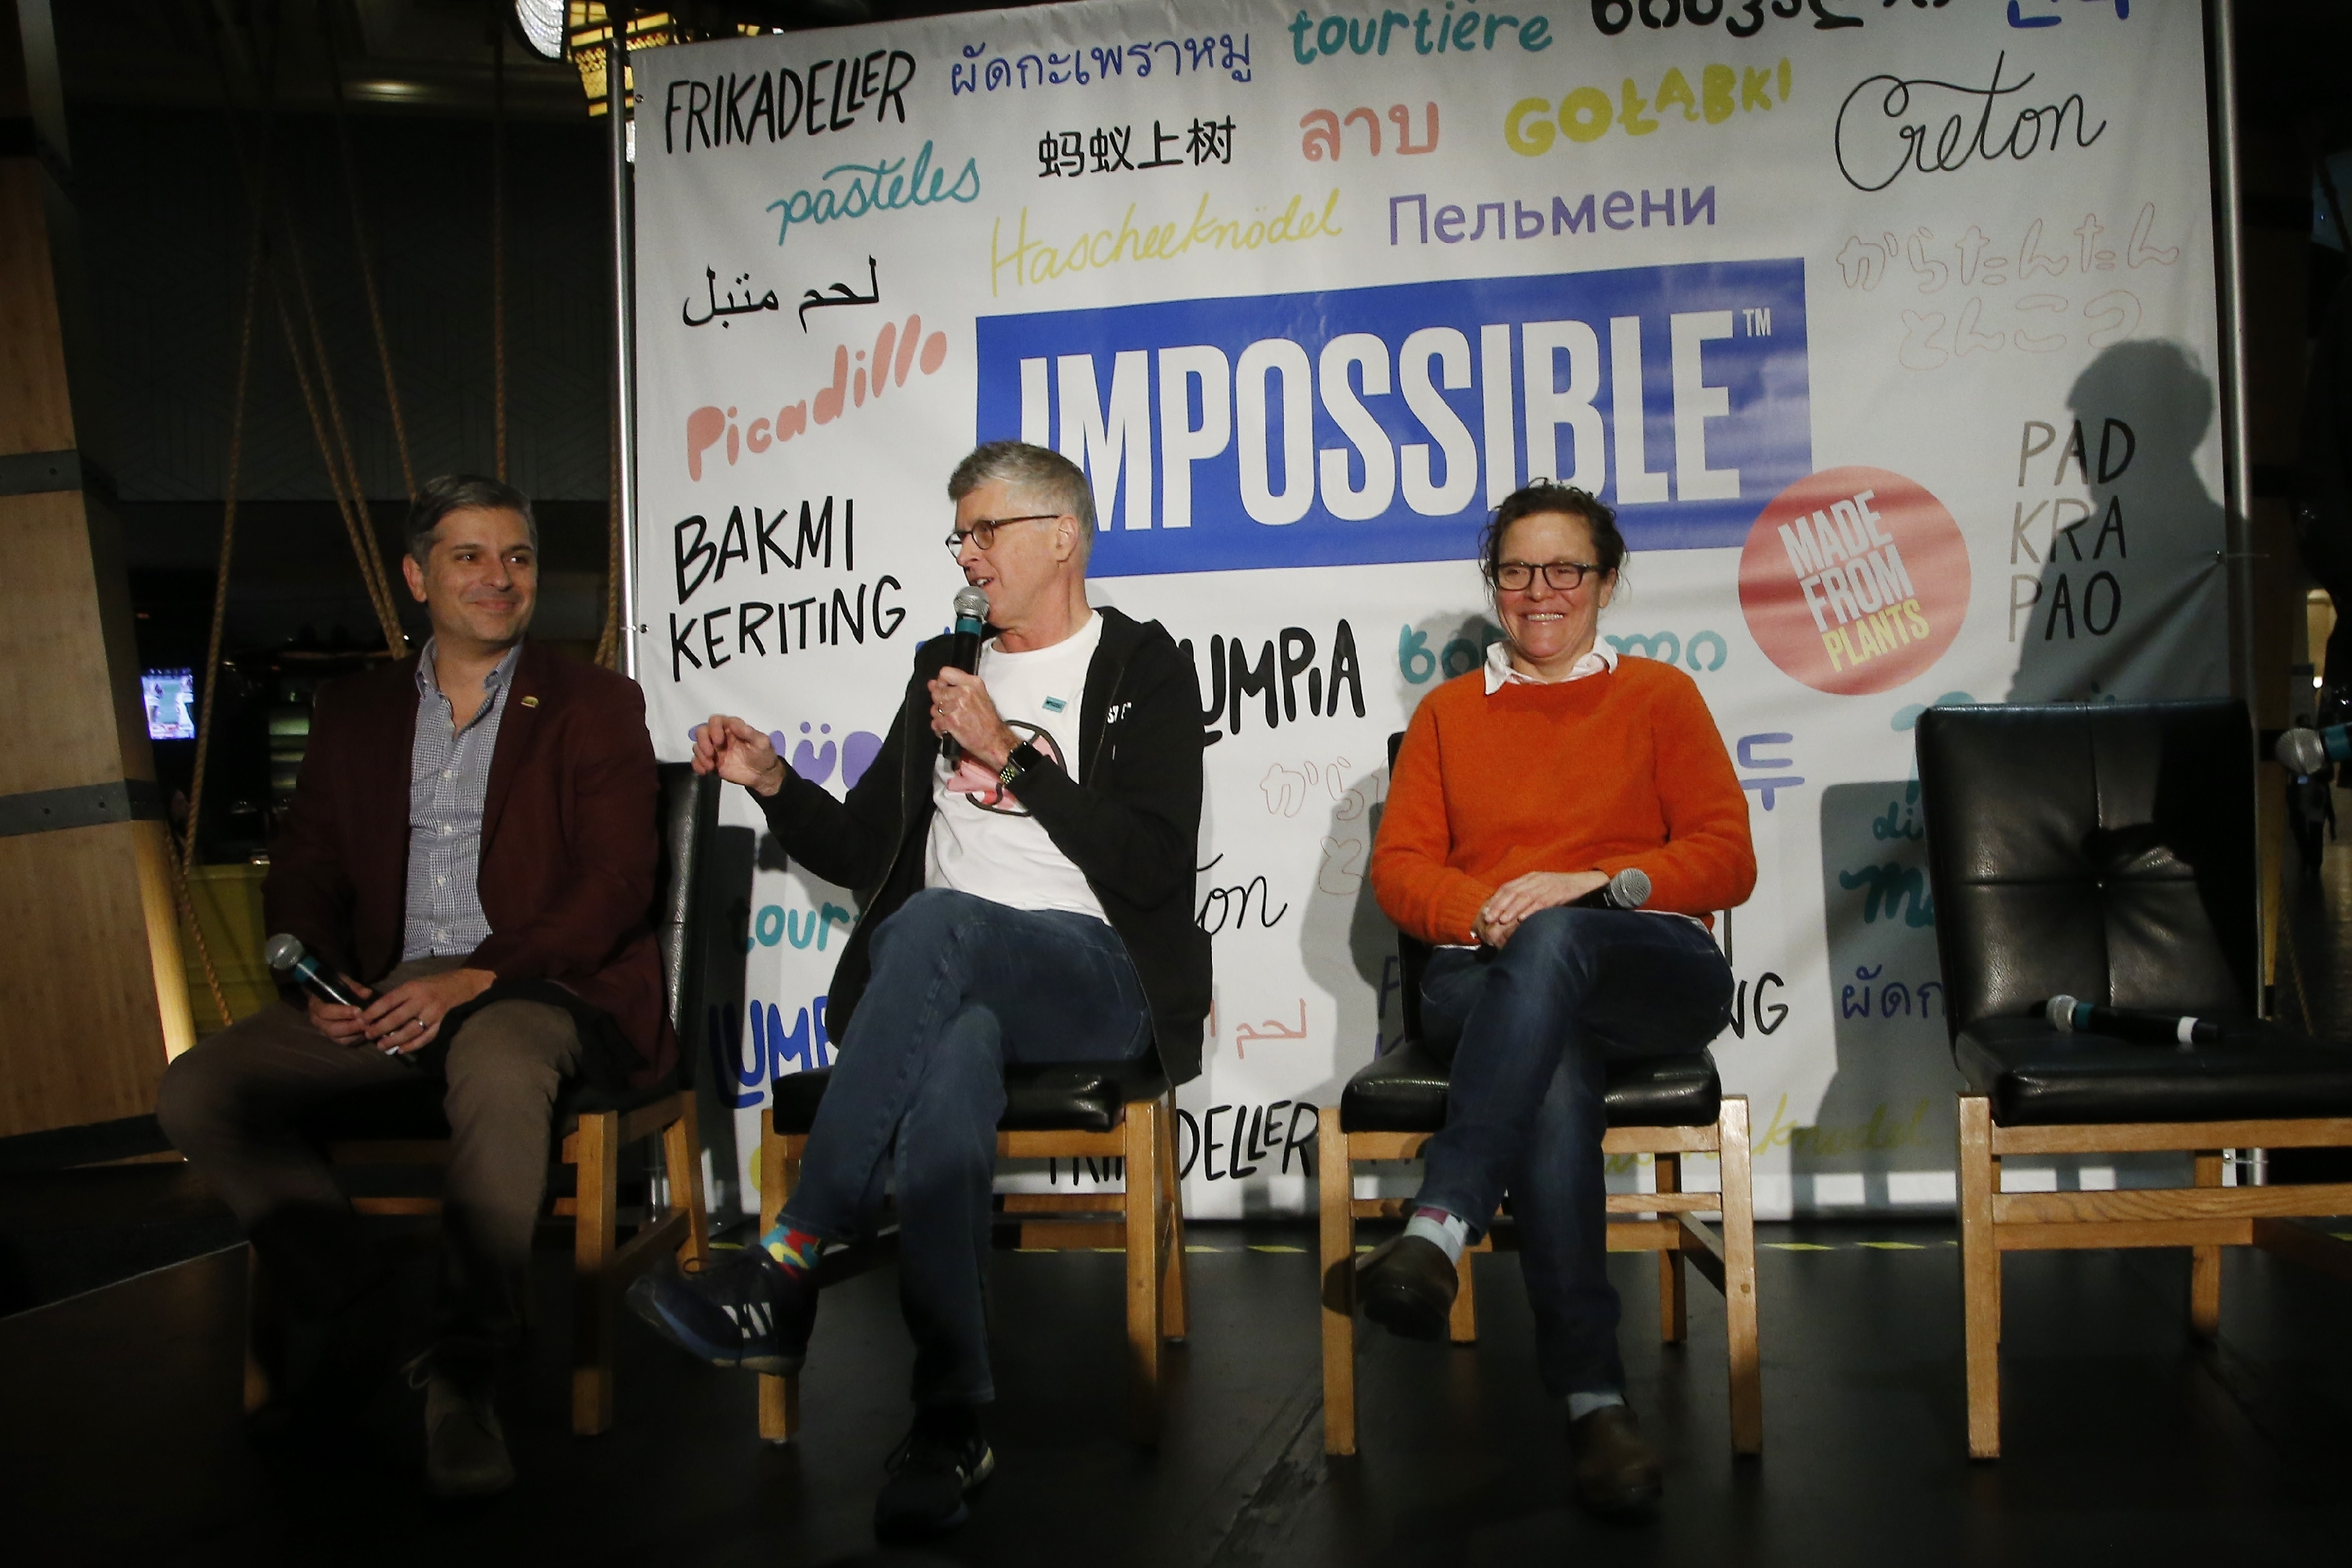 Dr. Patrick Brown (center), founder and CEO of Impossible Foods, the California plant-based meat company, unveils Impossible Pork and Impossible Sausage alongside Burger King CMO Fernando Machado (left) and chef and restaurant owner Traci Des Jardins at the CES tech show in Las Vegas.